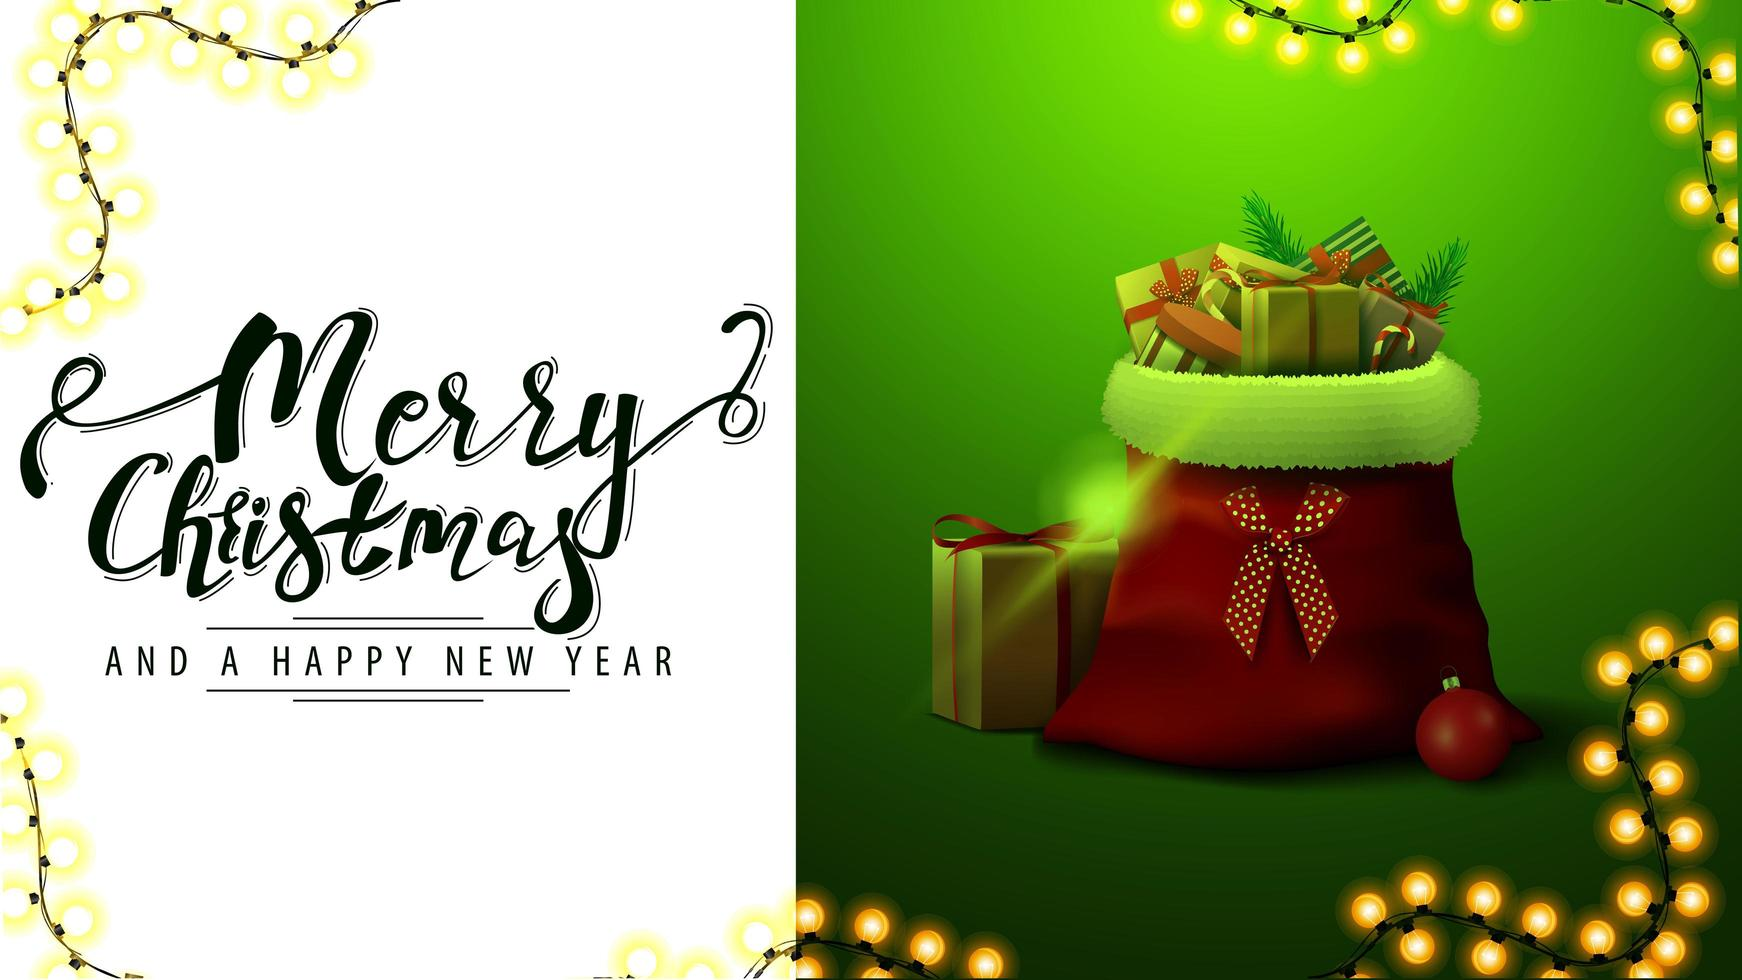 Merry Christmas and happy New Year, white and green card for website with garland and Santa Claus bag with presents vector